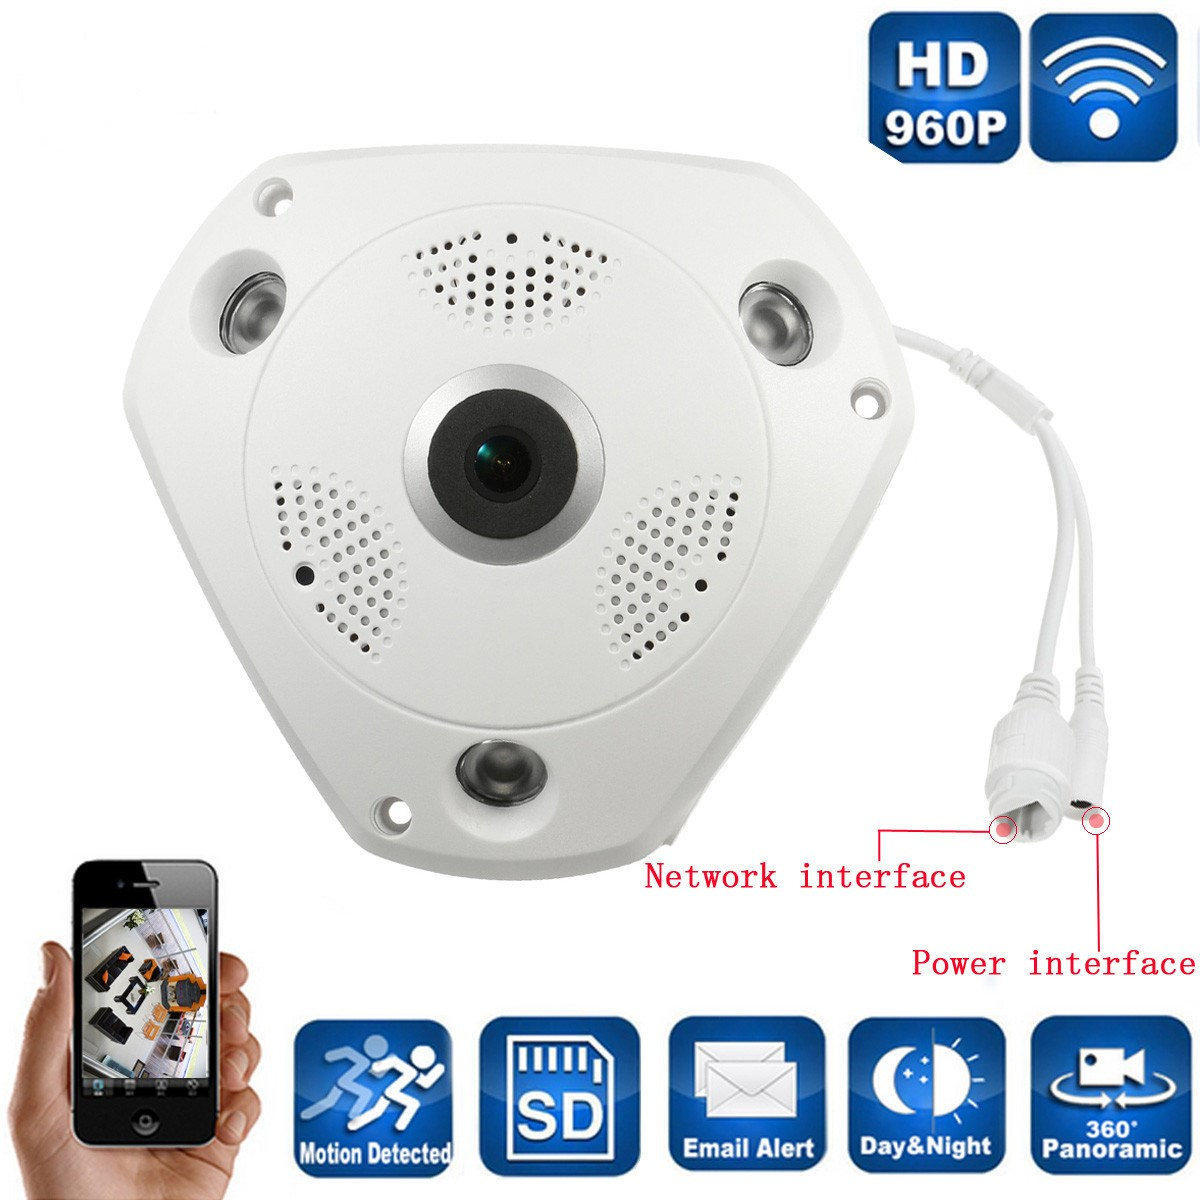 Wireless Panoramic Fisheye Camera 960P HD Wireless Wifi Security Network 3D VR IP Camera Remote Control Surveillance Camera erasmart hd 960p p2p network wireless 360 panoramic fisheye digital zoom camera white